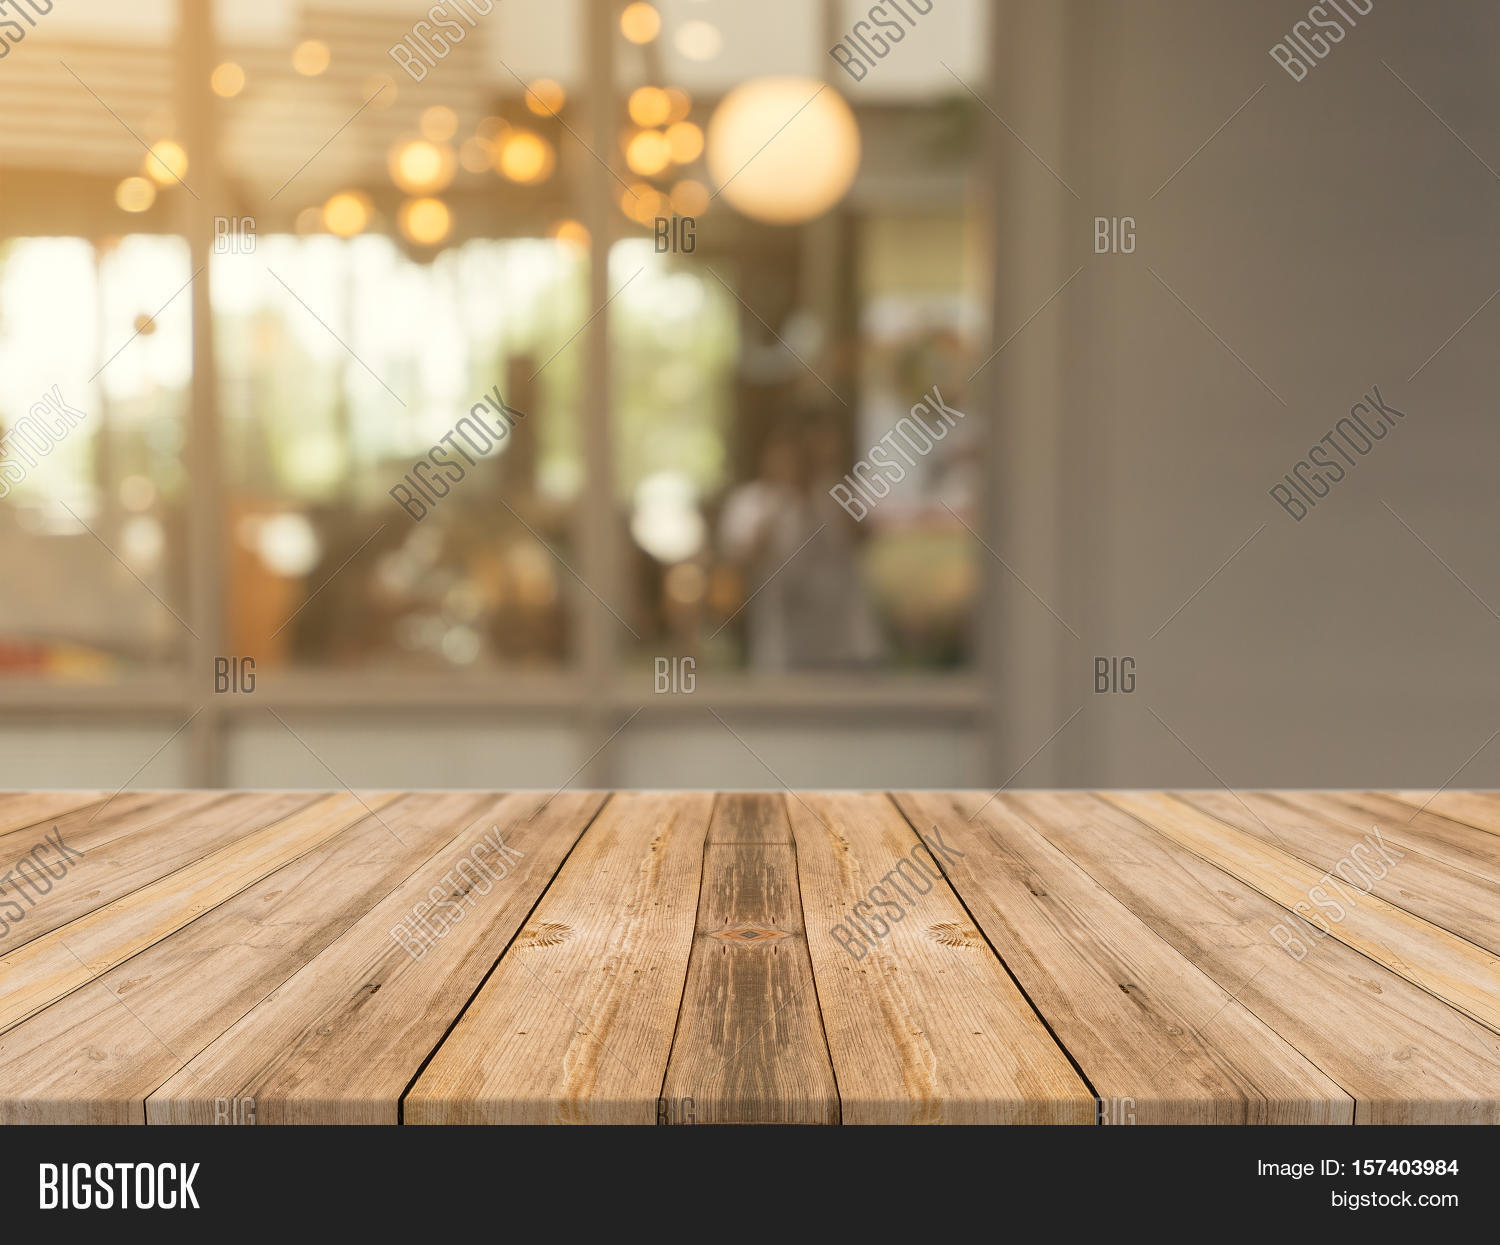 Background image table - Wooden Board Empty Table Top On Of Blurred Background Perspective Brown Wood Table Over Blur